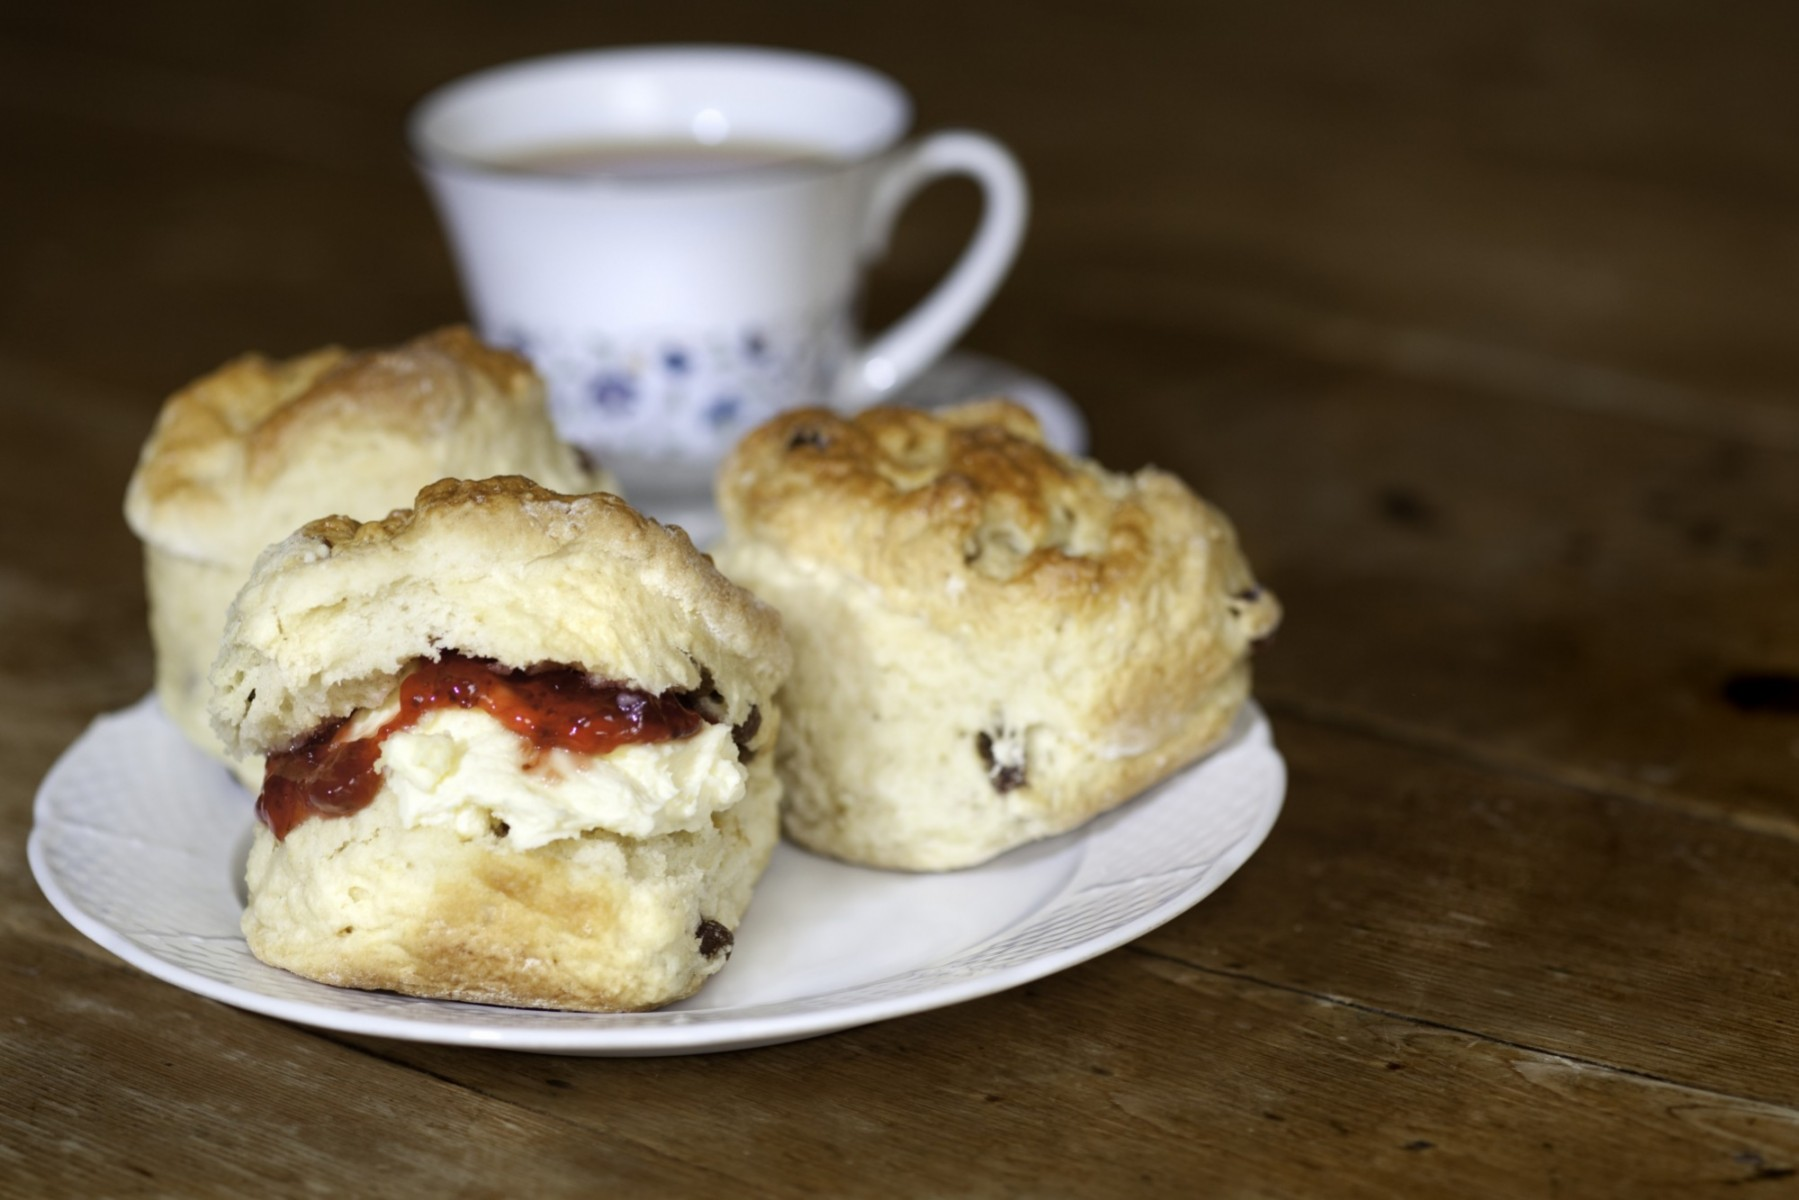 A plate of jam and cream scones from afternoon tea